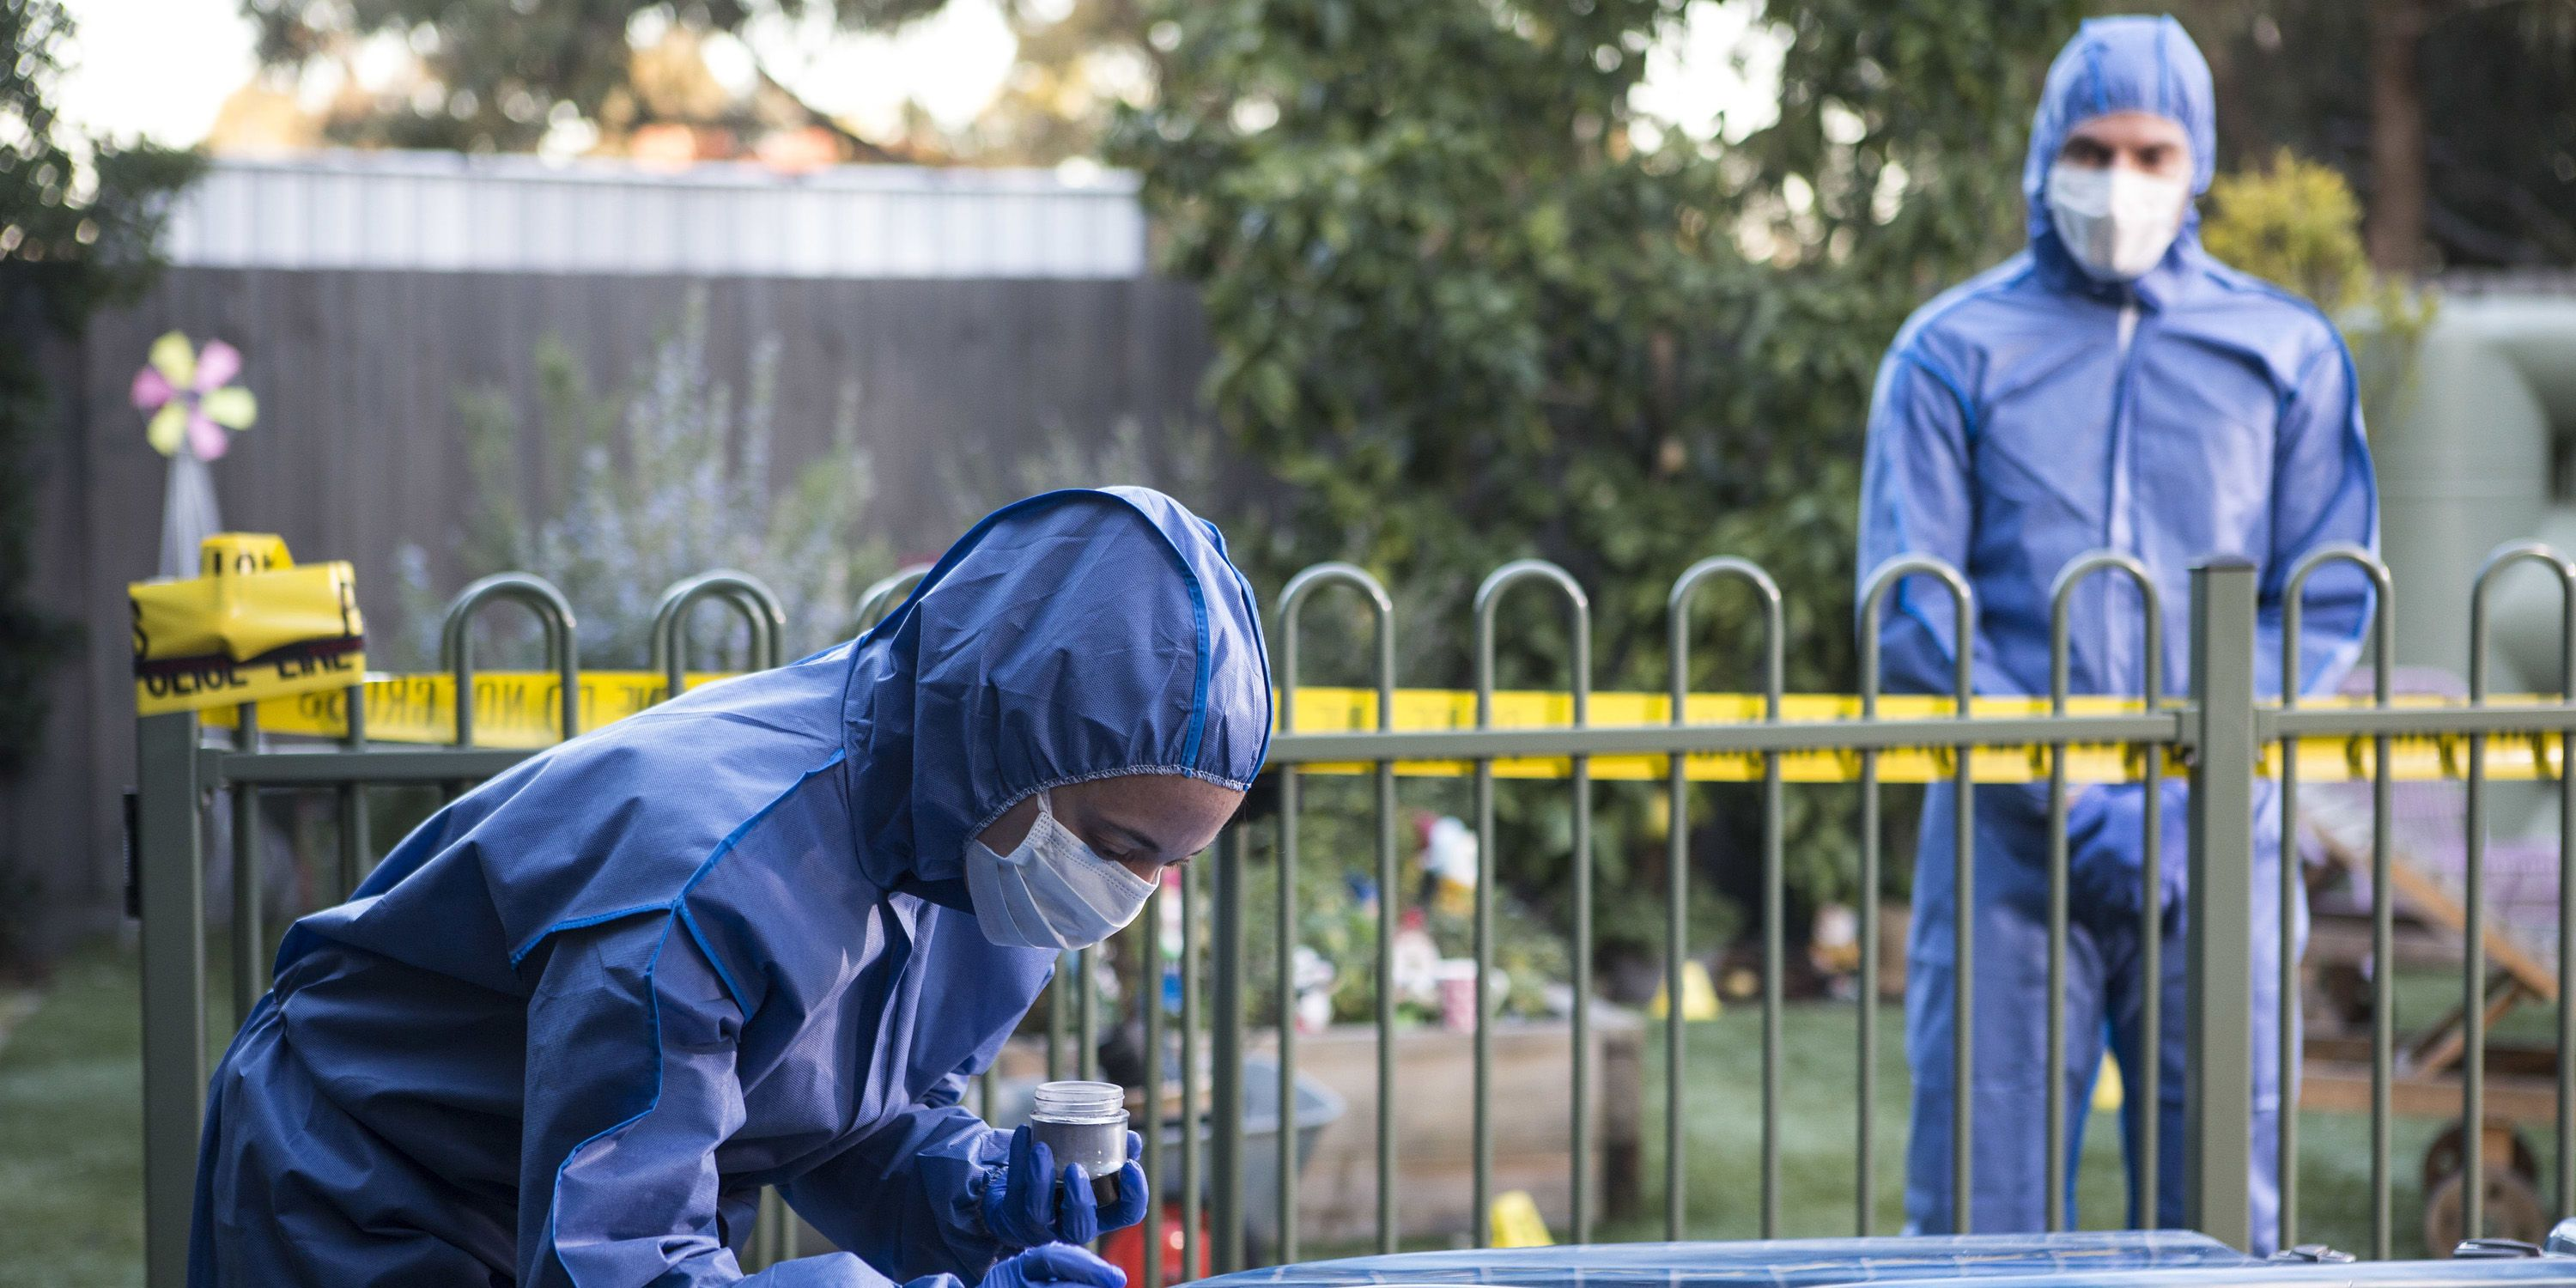 Hamish Roche's death creates a crime scene in Neighbours